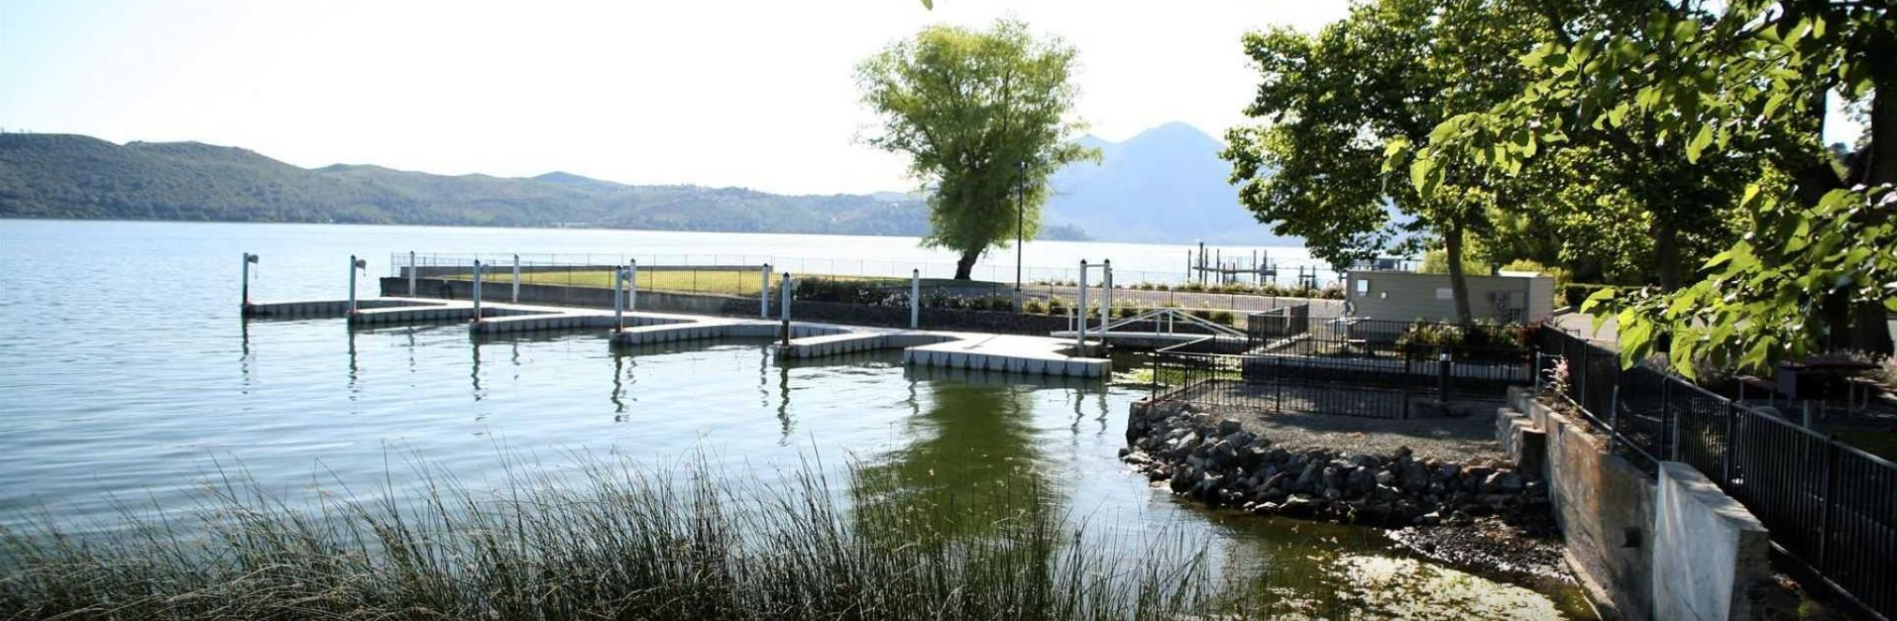 Clear Lake Cottages and Marina in Clearlake, California - Home